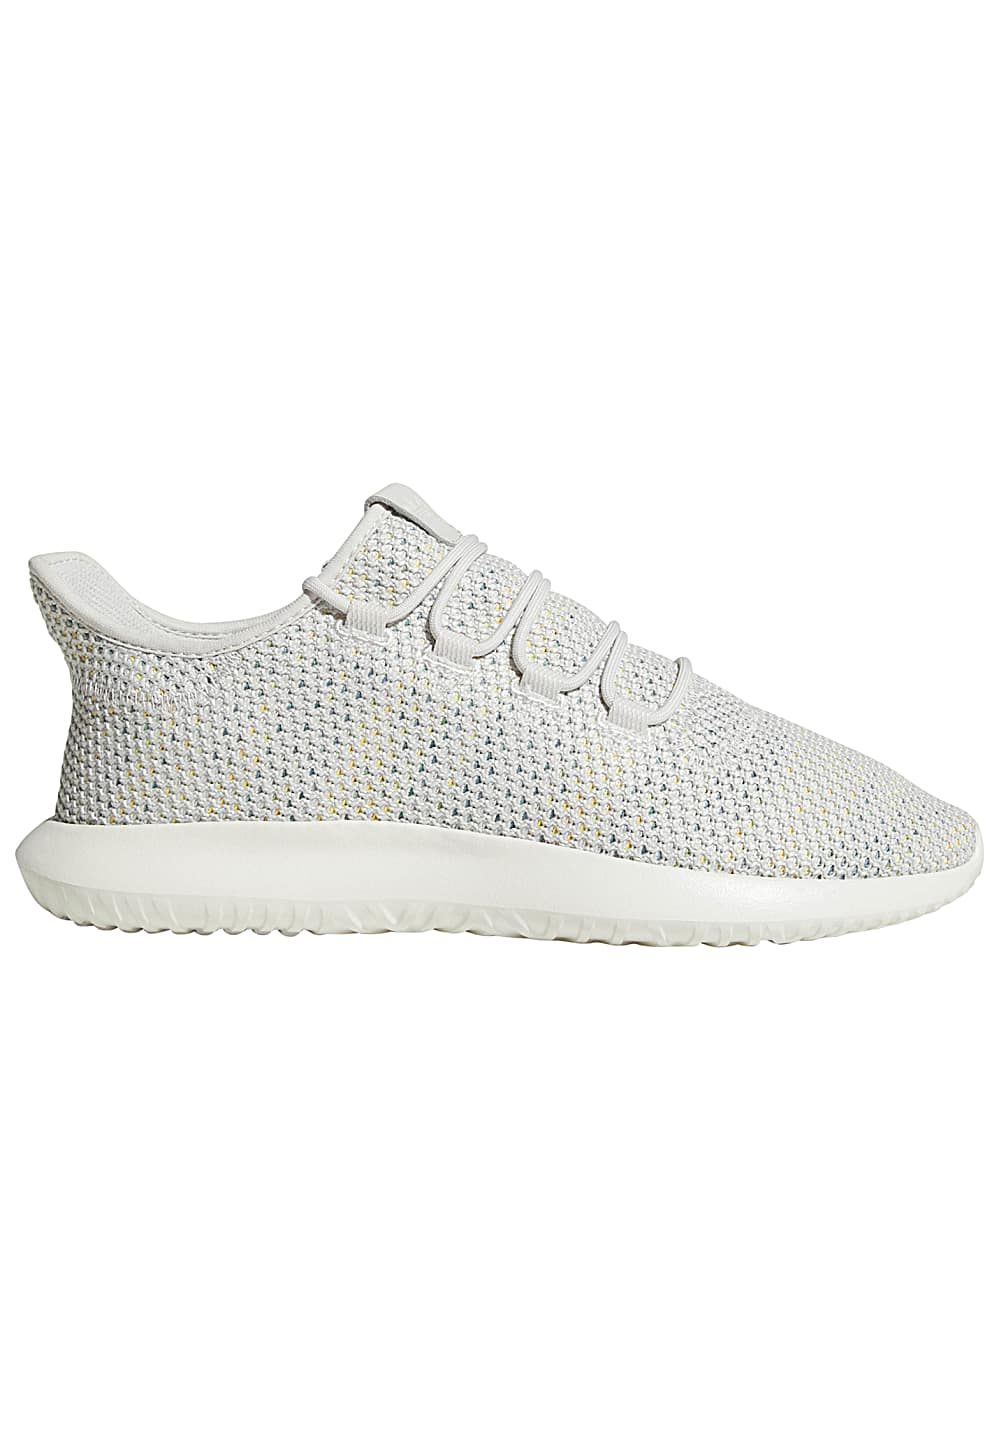 Herren Schuhe sneakers adidas Originals Tubular Shadow Ck